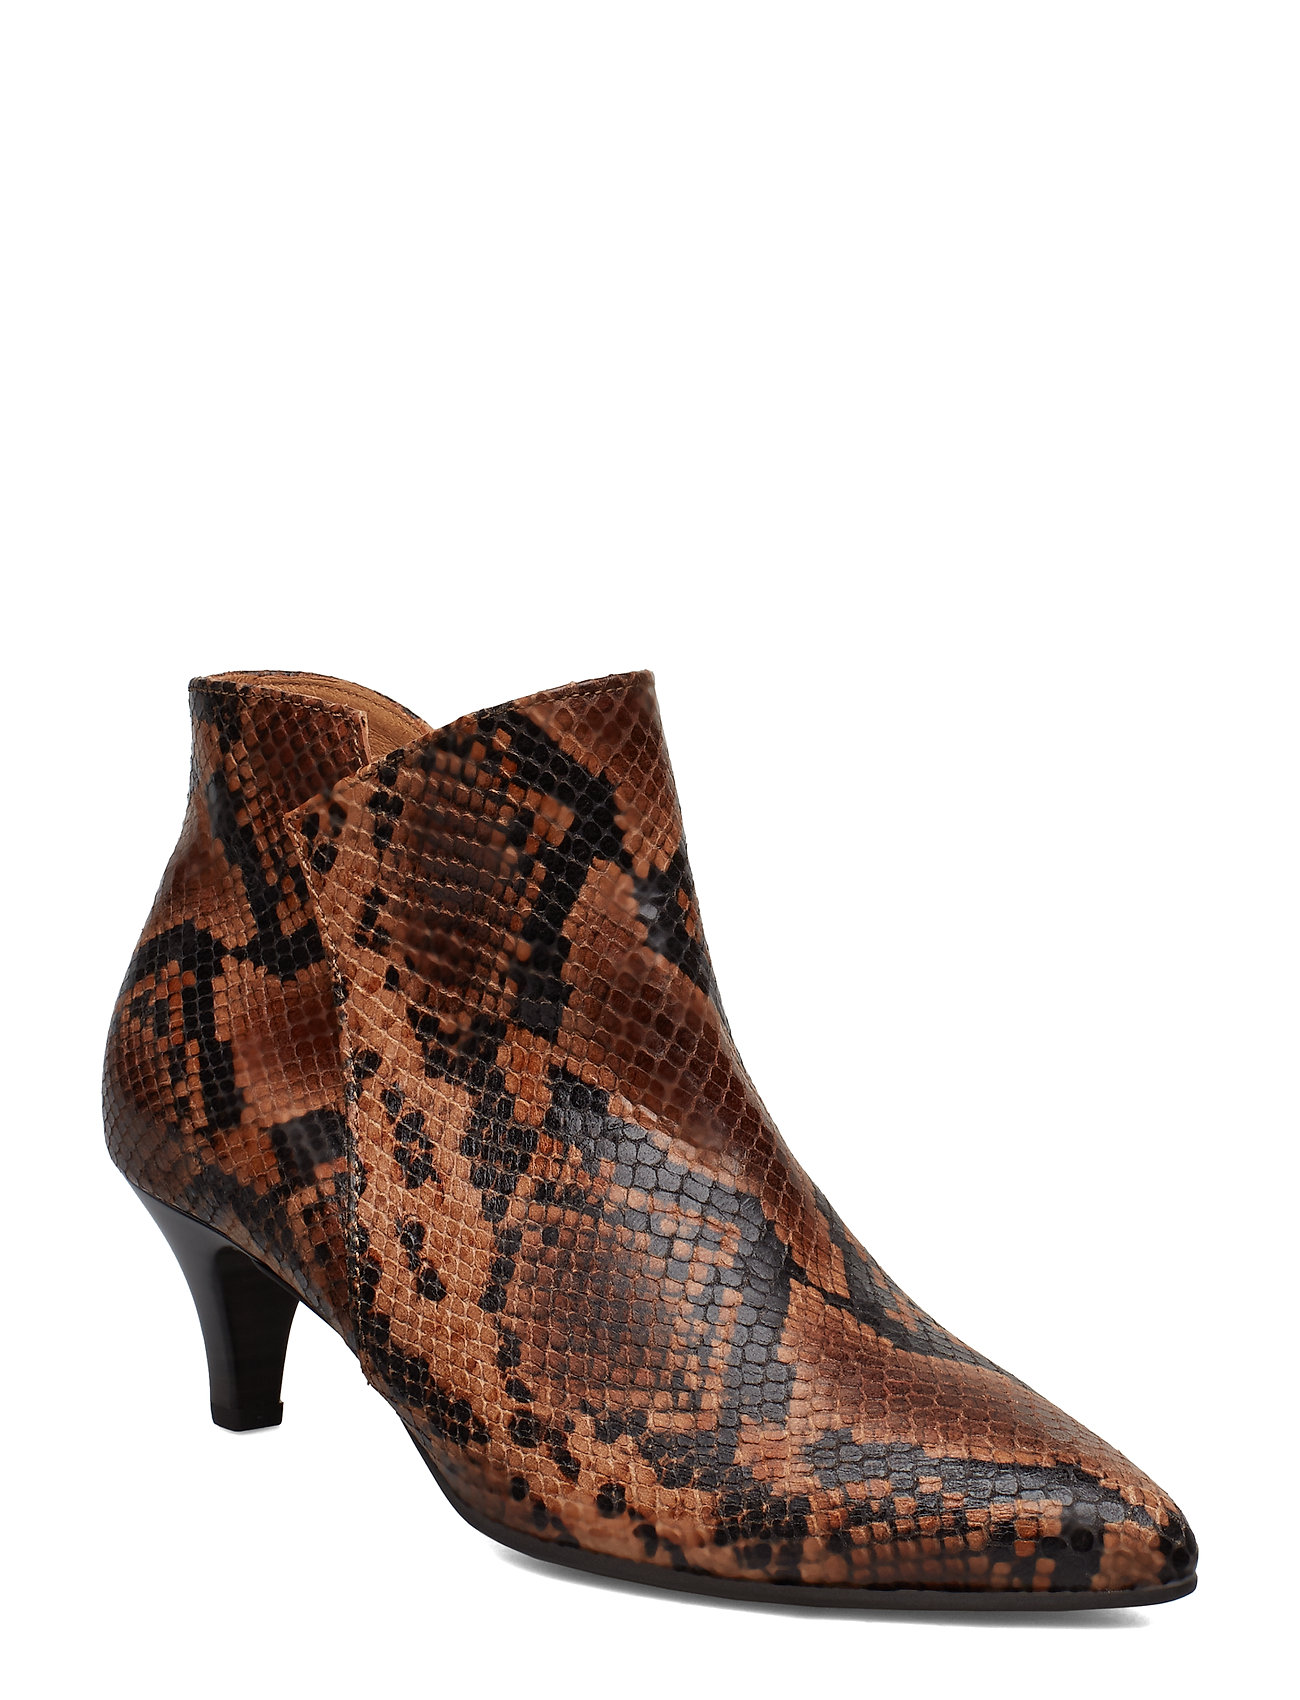 Image of Ankle Boots Shoes Boots Ankle Boots Ankle Boot - Heel Brun Gabor (3406225581)